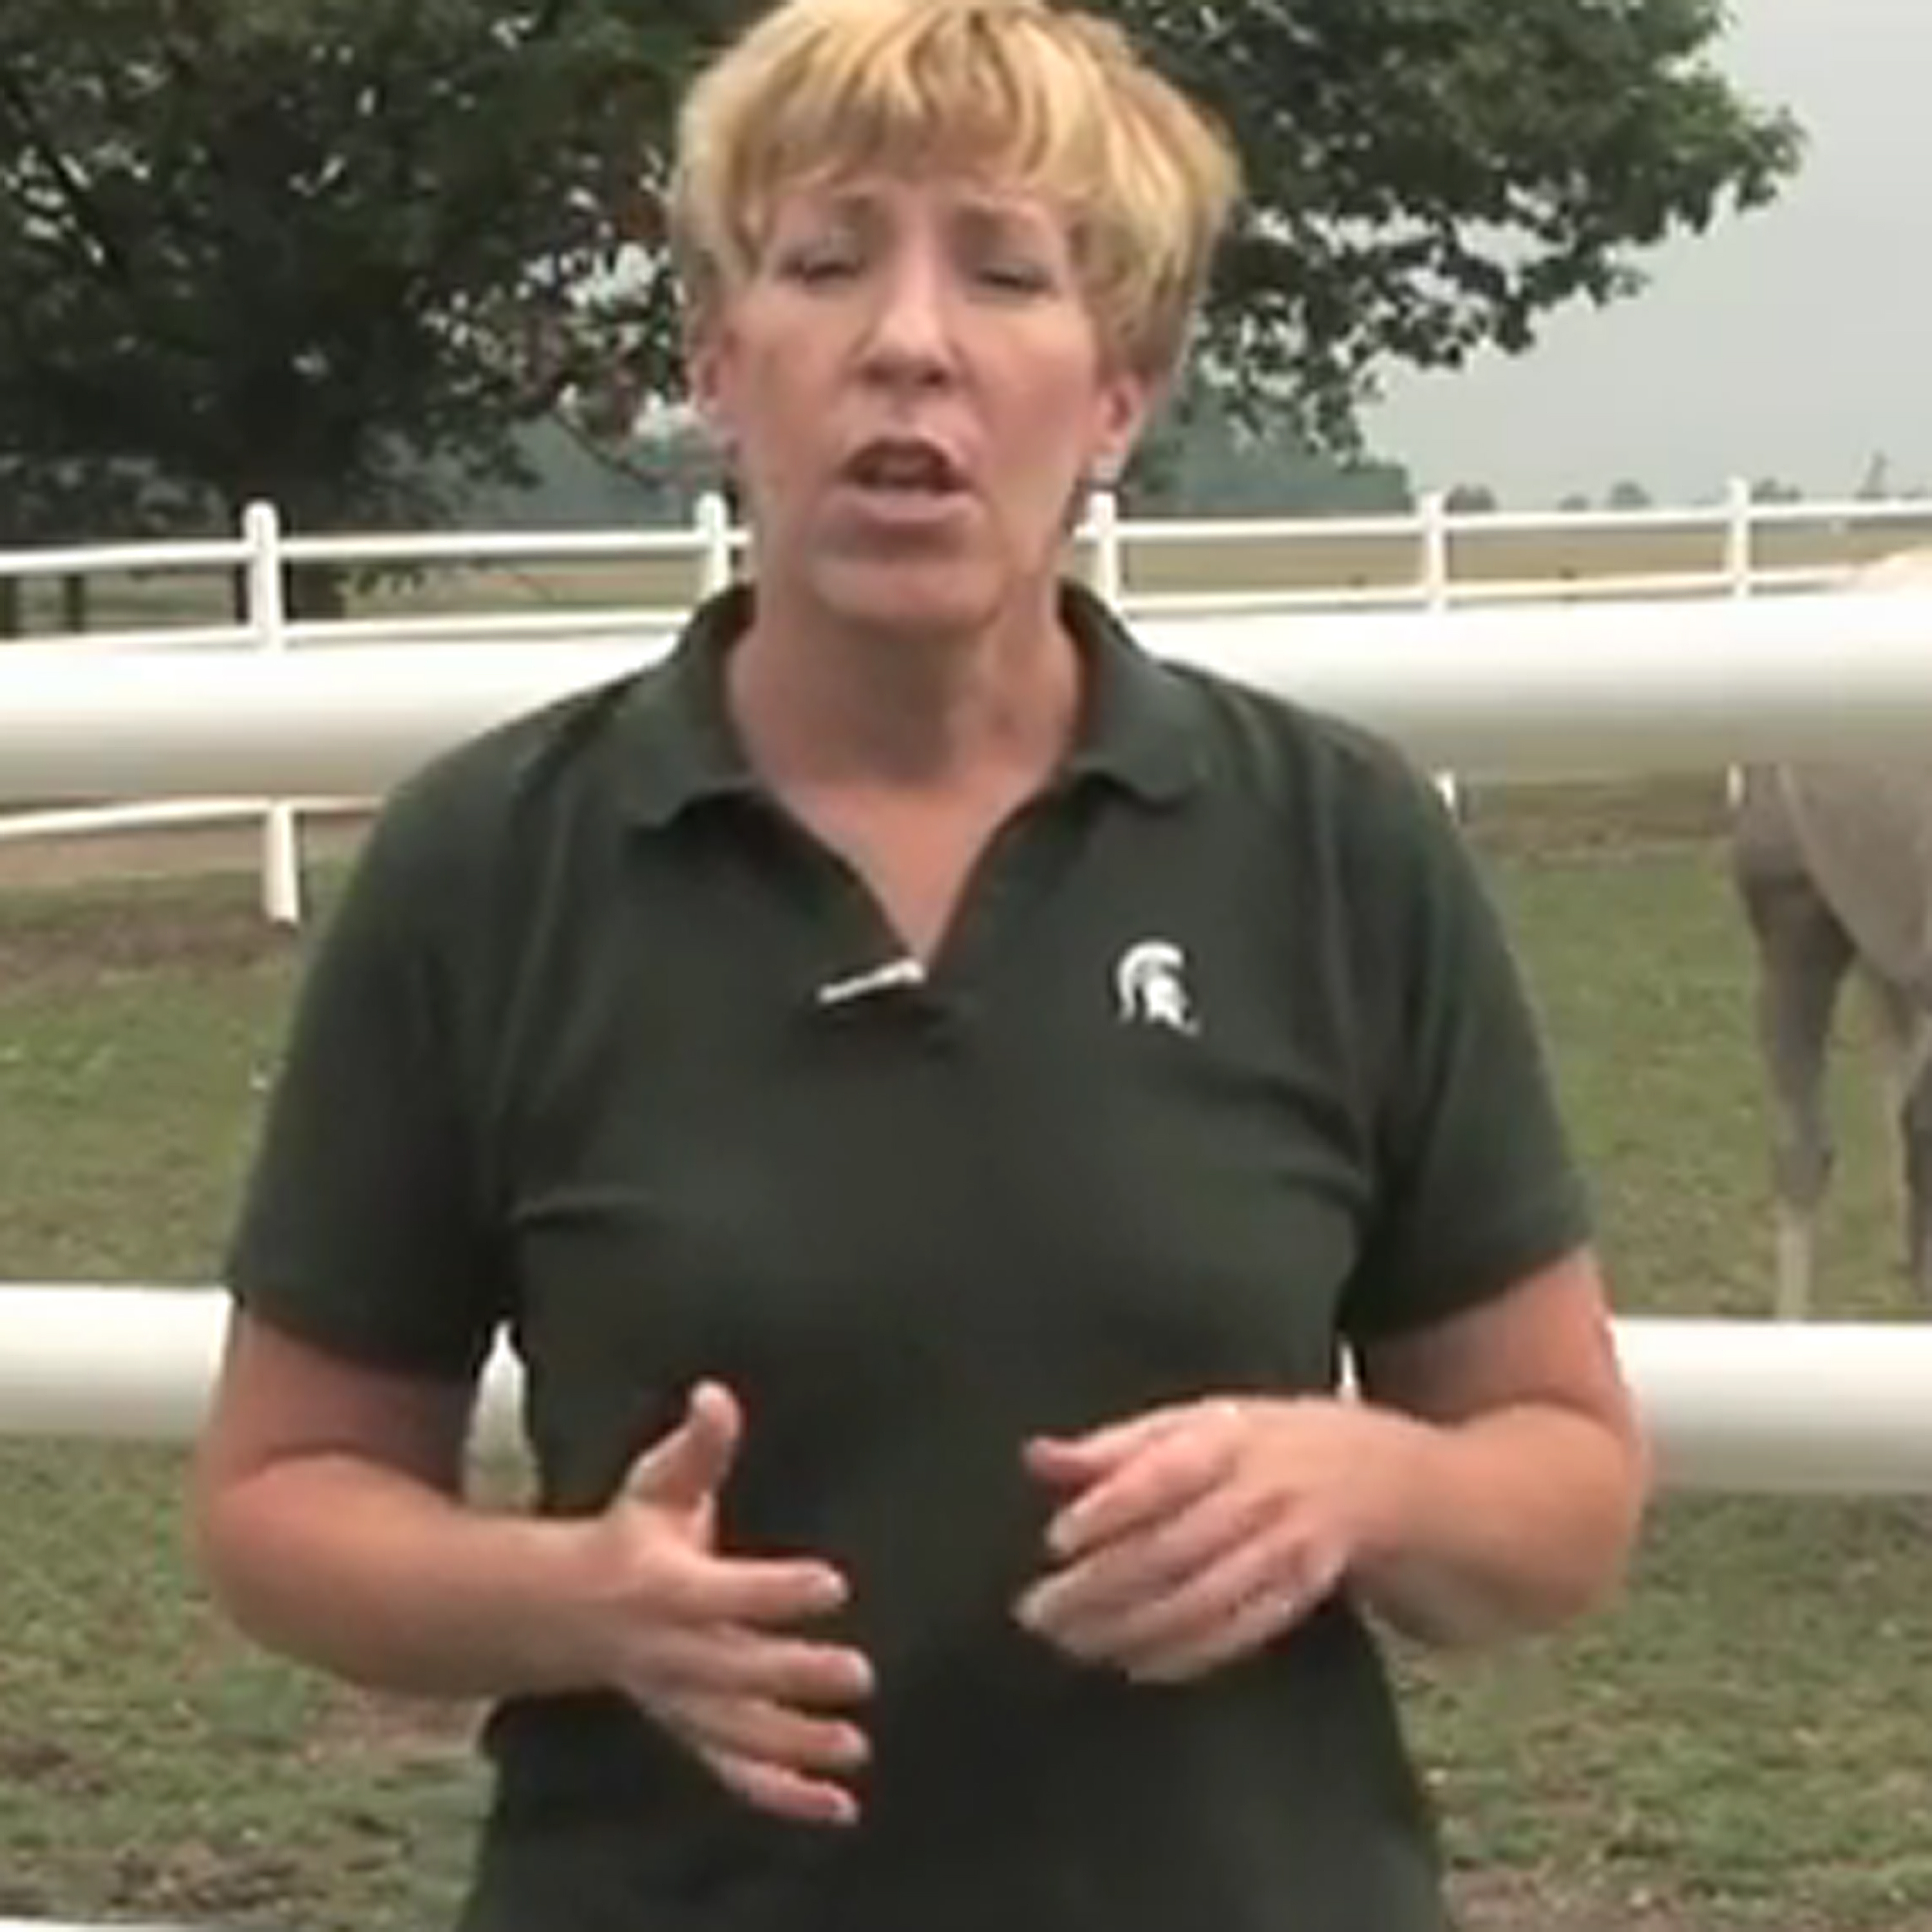 Video: Handling Your Mount When a Horse is Loose